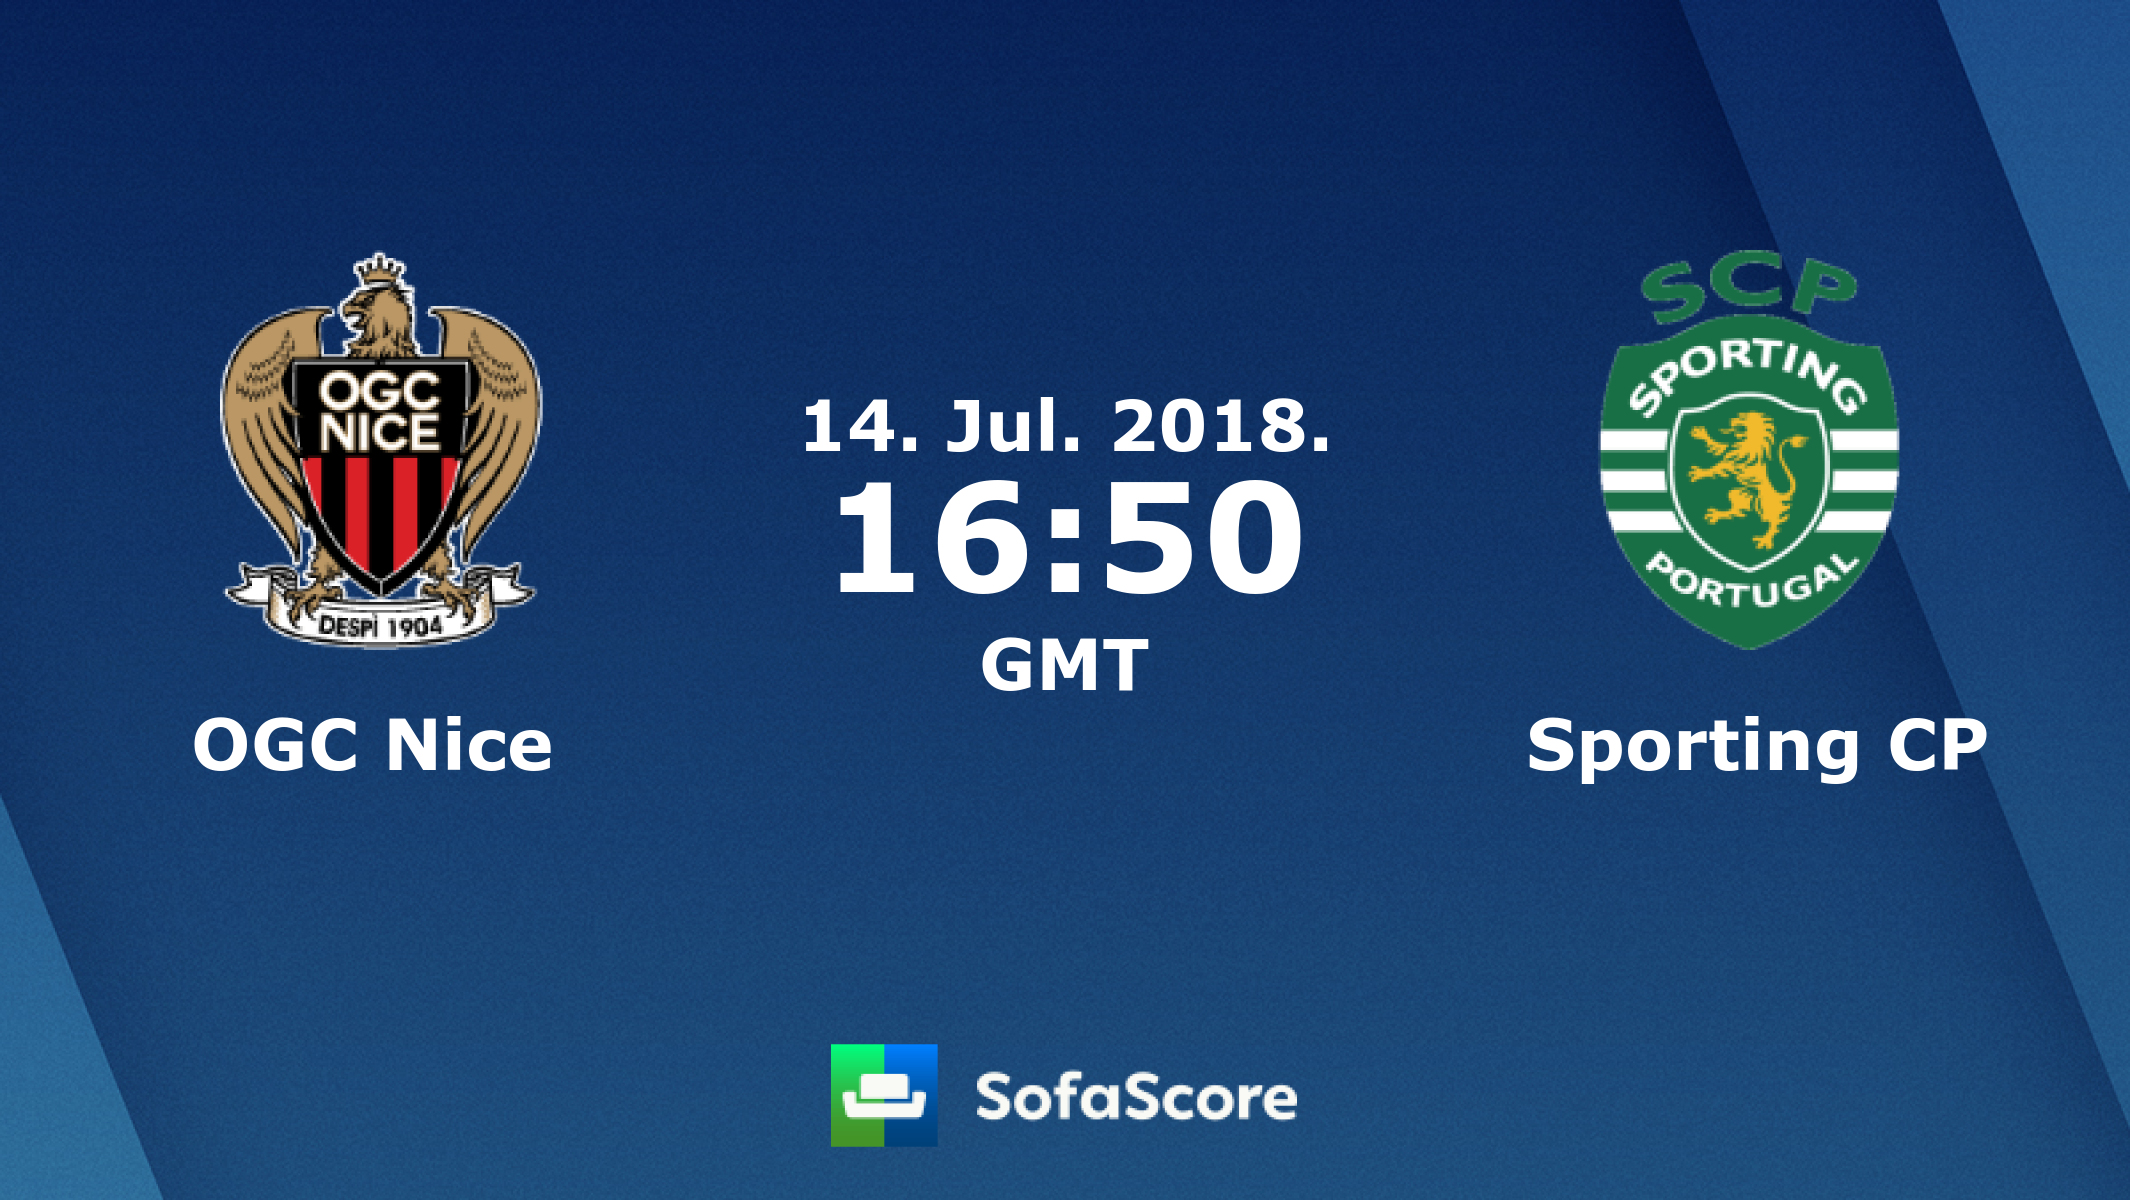 Ogc Nice Sporting Cp Live Score Video Stream And H2h Results Sofascore